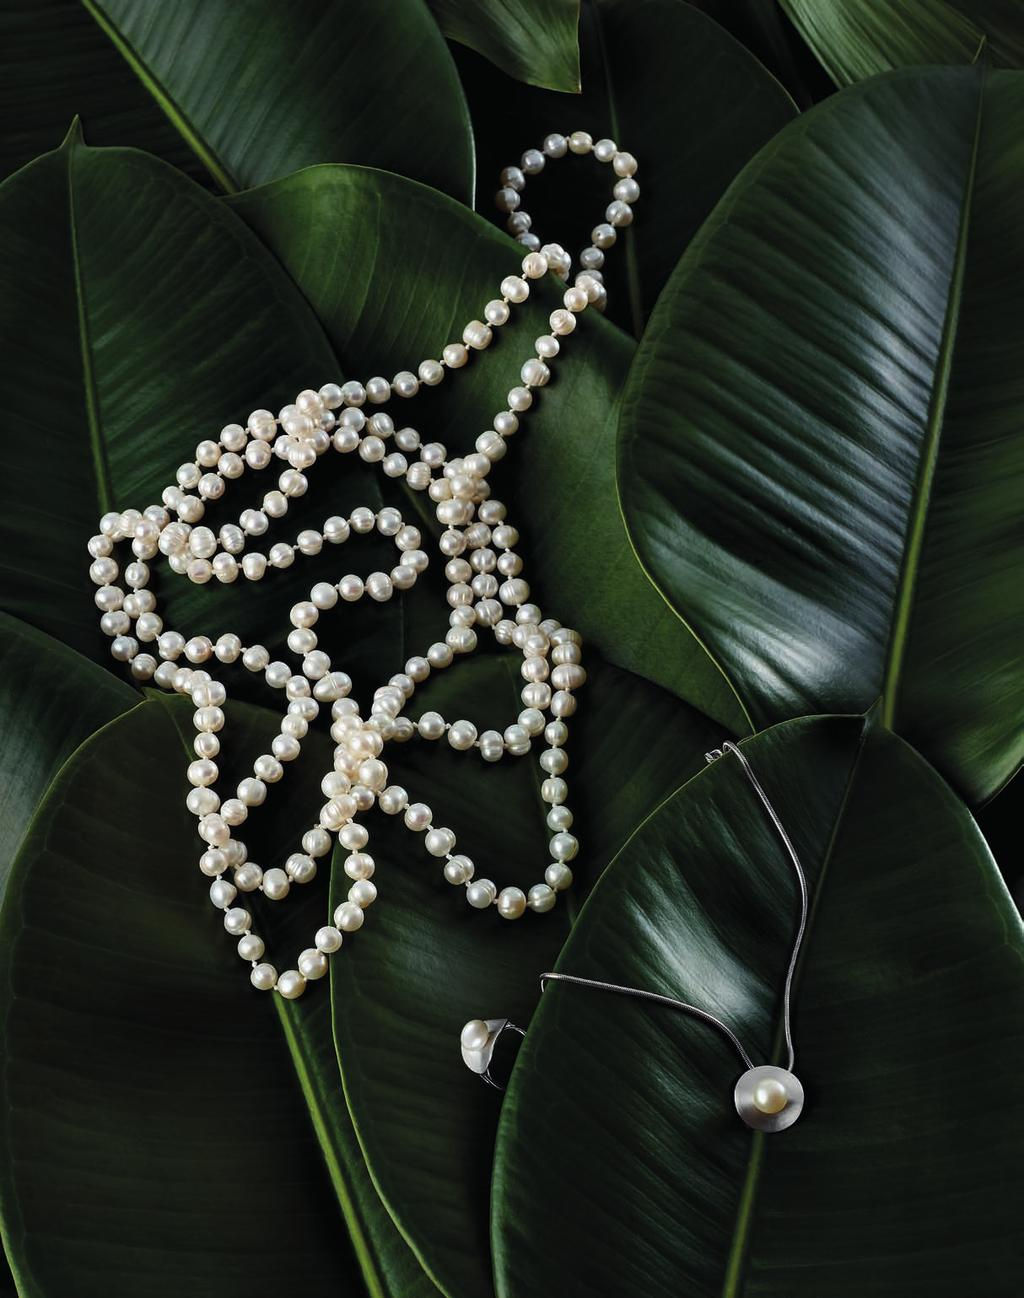 01 FRESHWATER PEARL NECKLACE CODE: 2237 69,90 White freshwater pearls, Ø 8mm, approx.